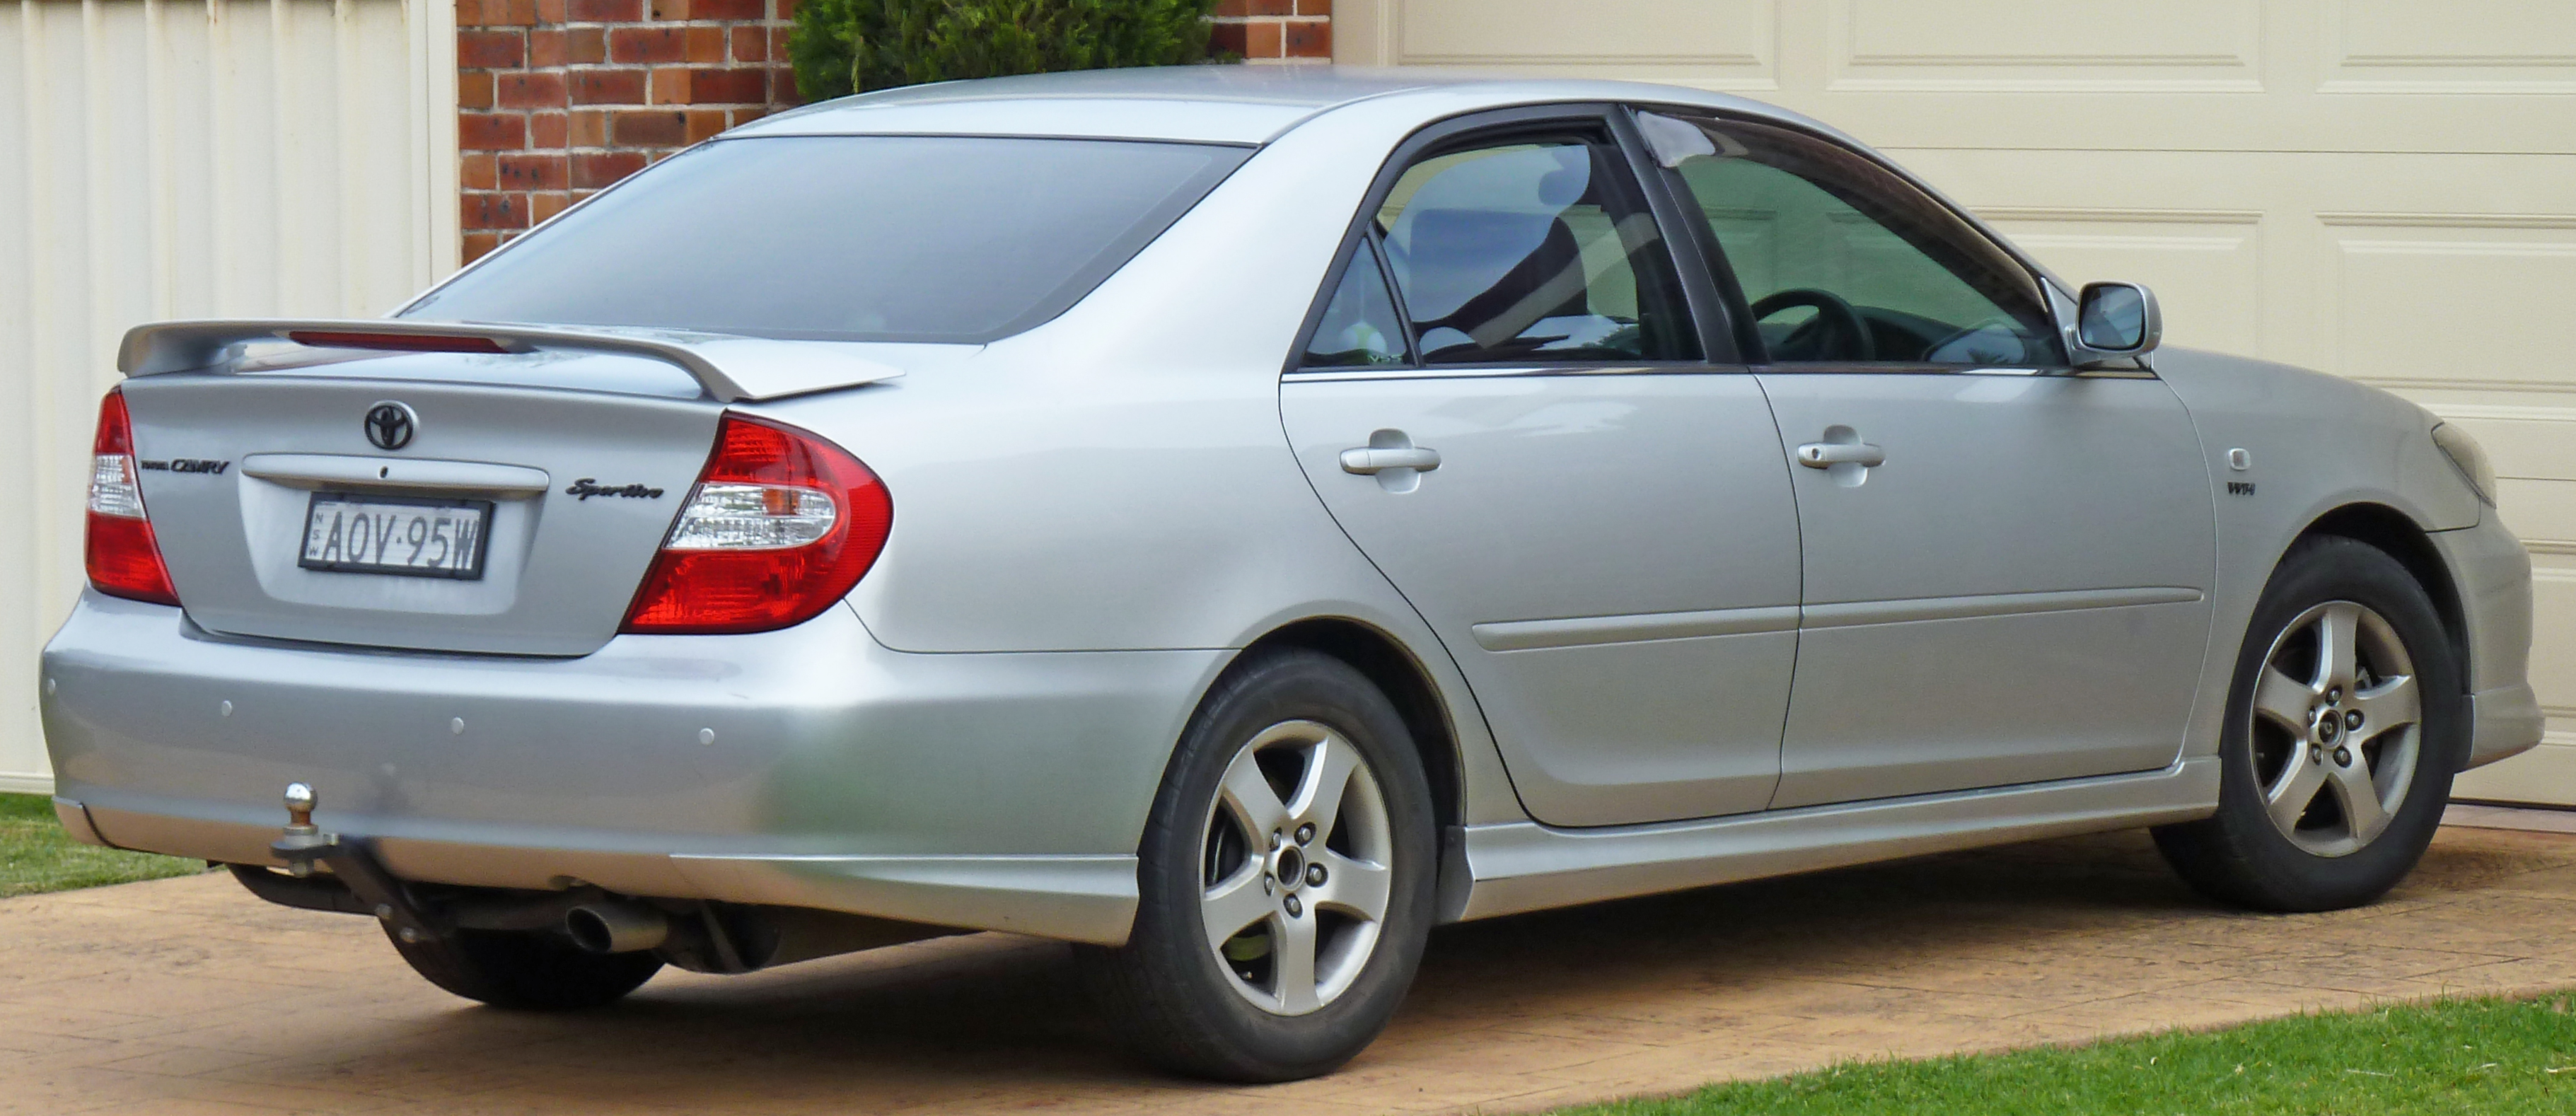 2004 Toyota Camry Information And Photos Momentcar